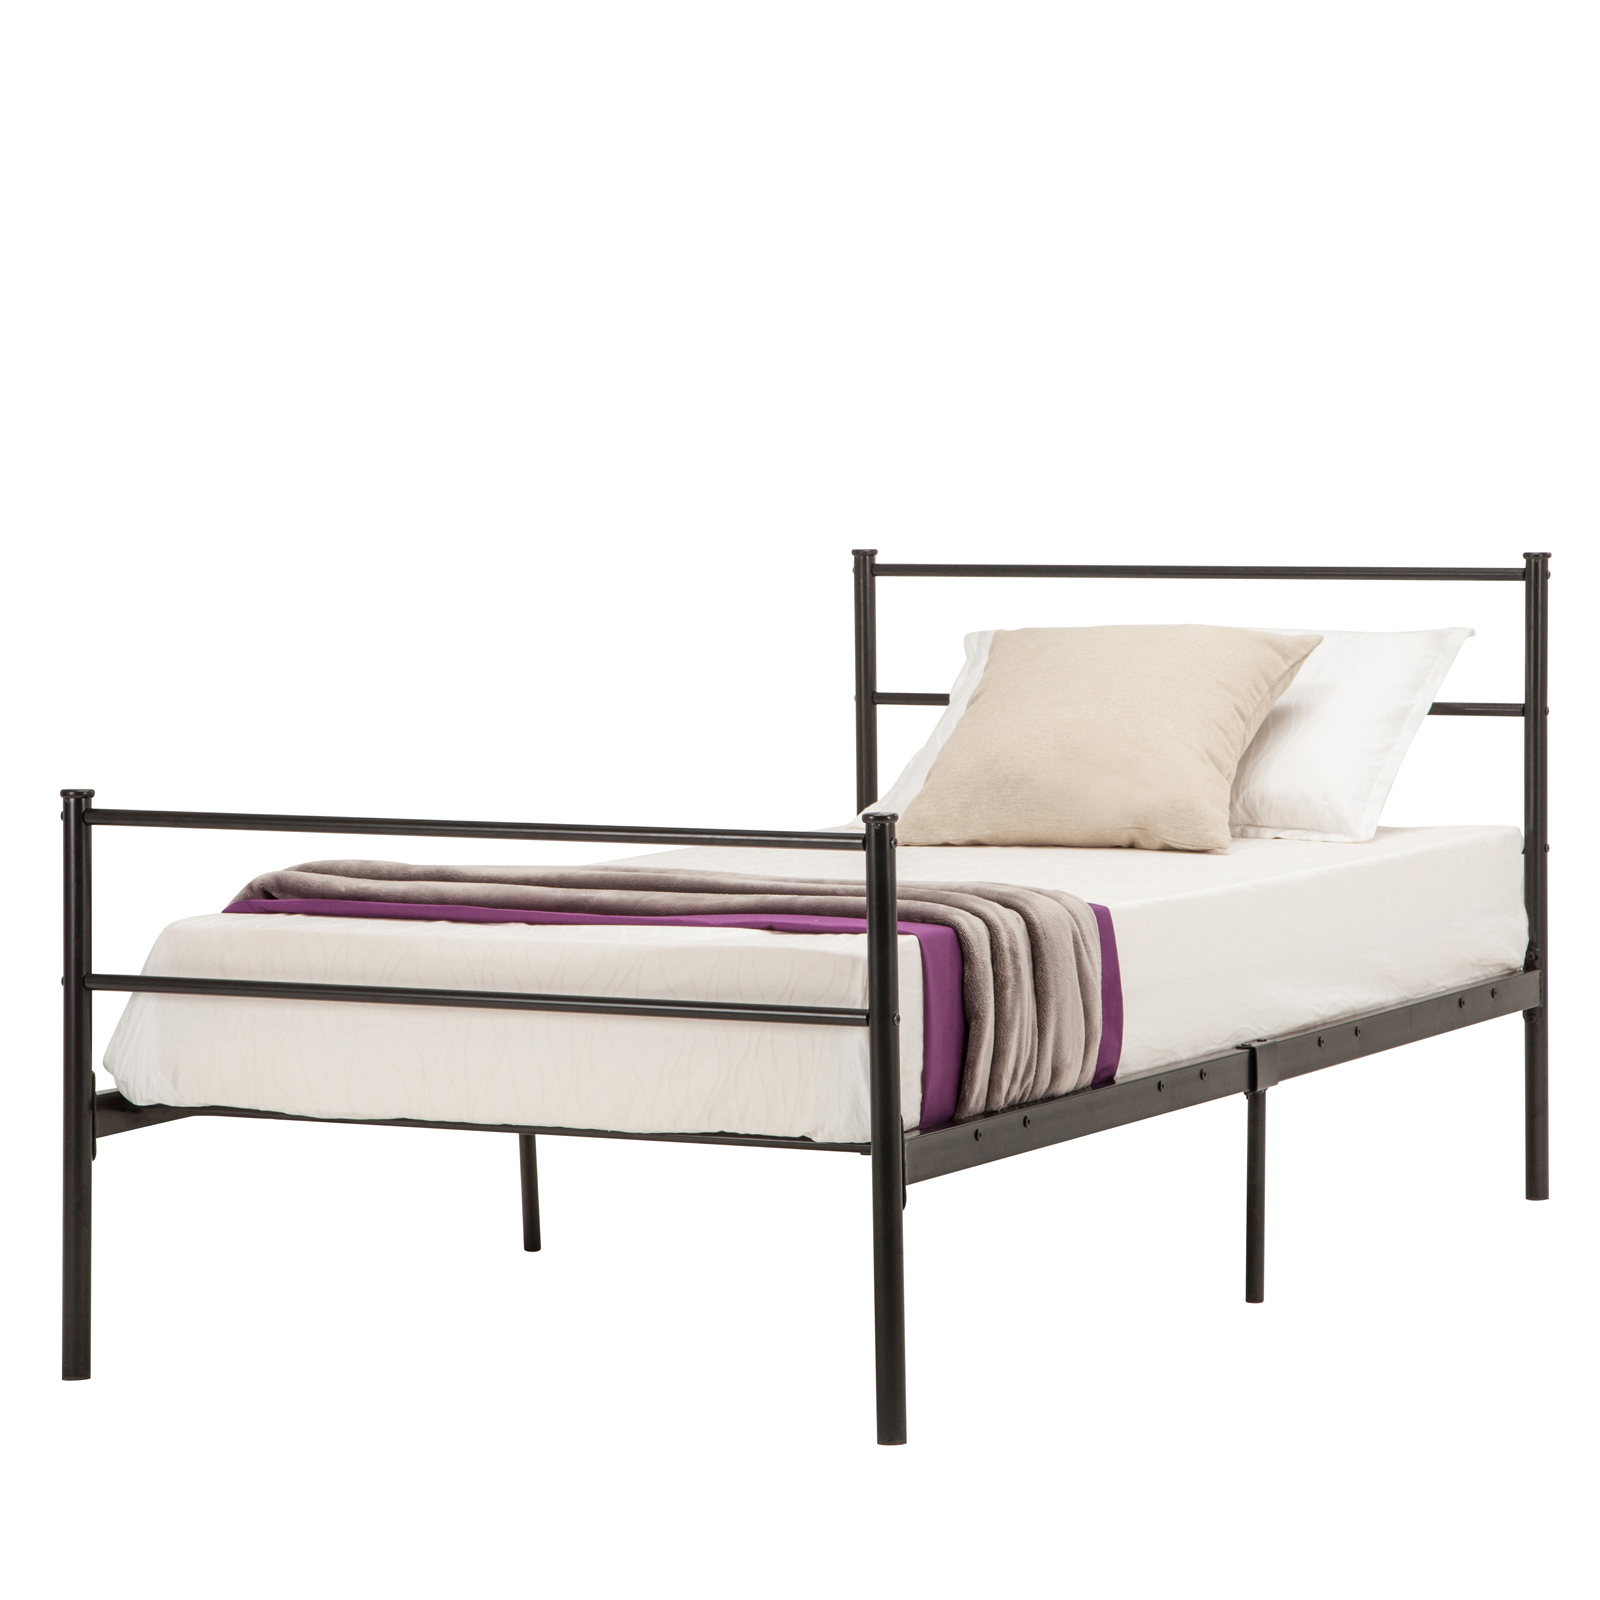 Twin Full Queen Size Metal Bed Frame Platform Headboards 6